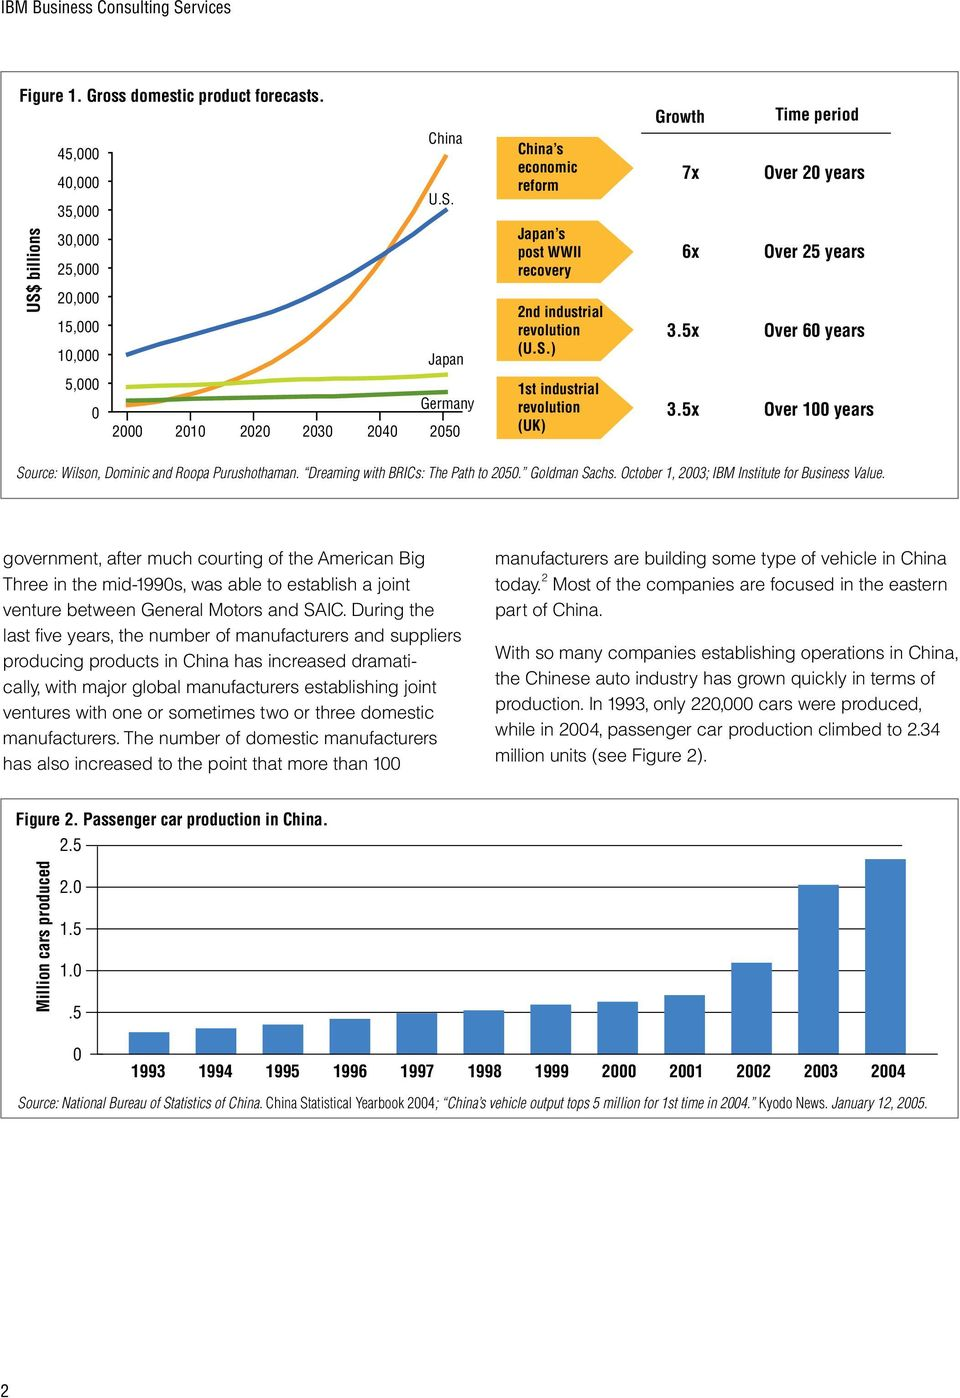 5x Over 100 years Source: Wilson, Dominic and Roopa Purushothaman. Dreaming with BRICs: The Path to 2050. Goldman Sachs. October 1, 2003; IBM Institute for Business Value.